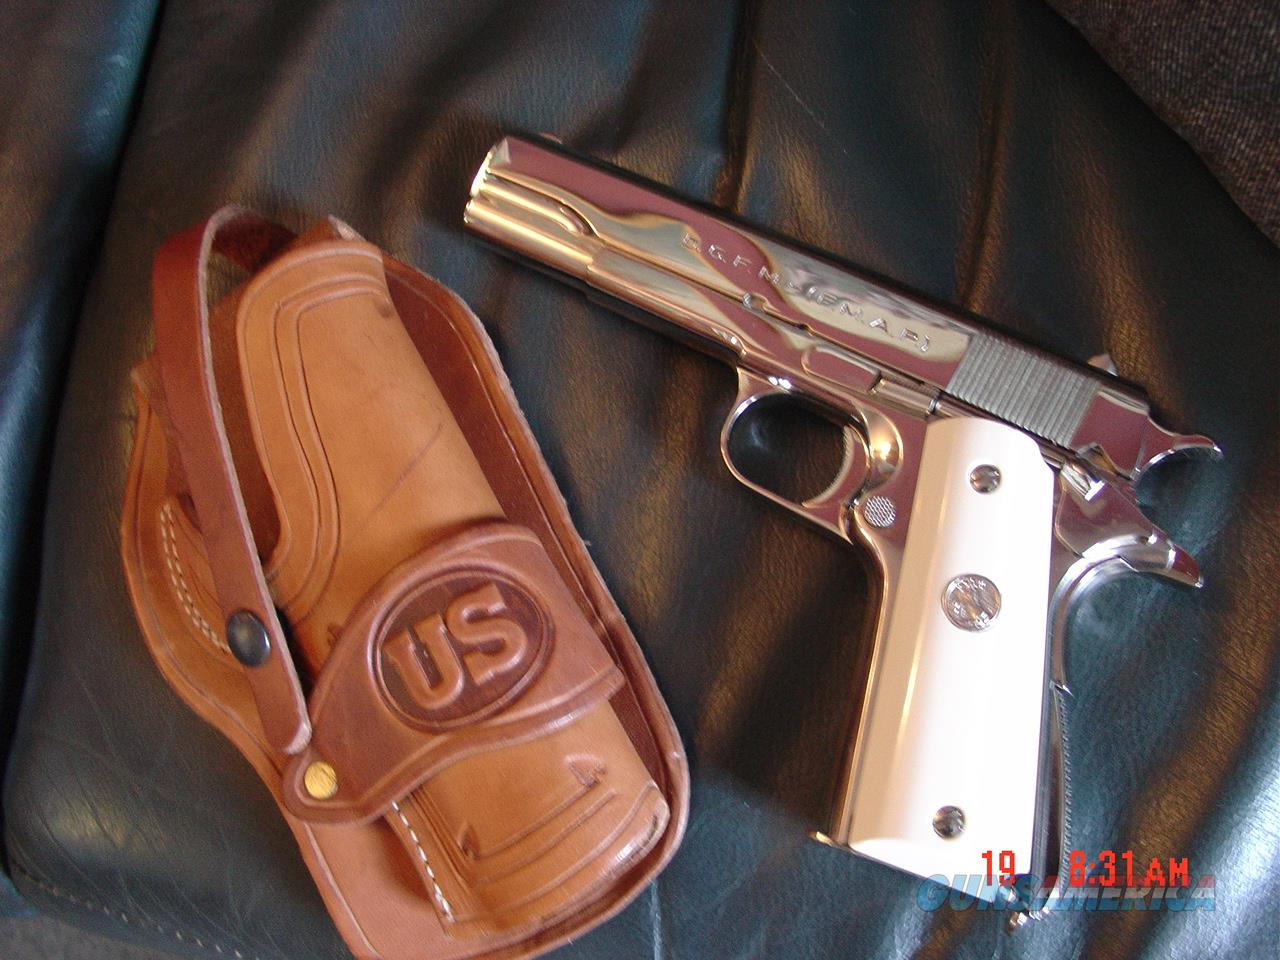 Colt Argentine Army,D.G.F.M.under license by Colt, & its the model 1927,fully refinished nickel,real Water Buffalo bone grips,carved holster,made around 1950,Lanyard loop,Colt 45 magazine-a real showpiece !!  Guns > Pistols > Colt Automatic Pistols (1911 & Var)